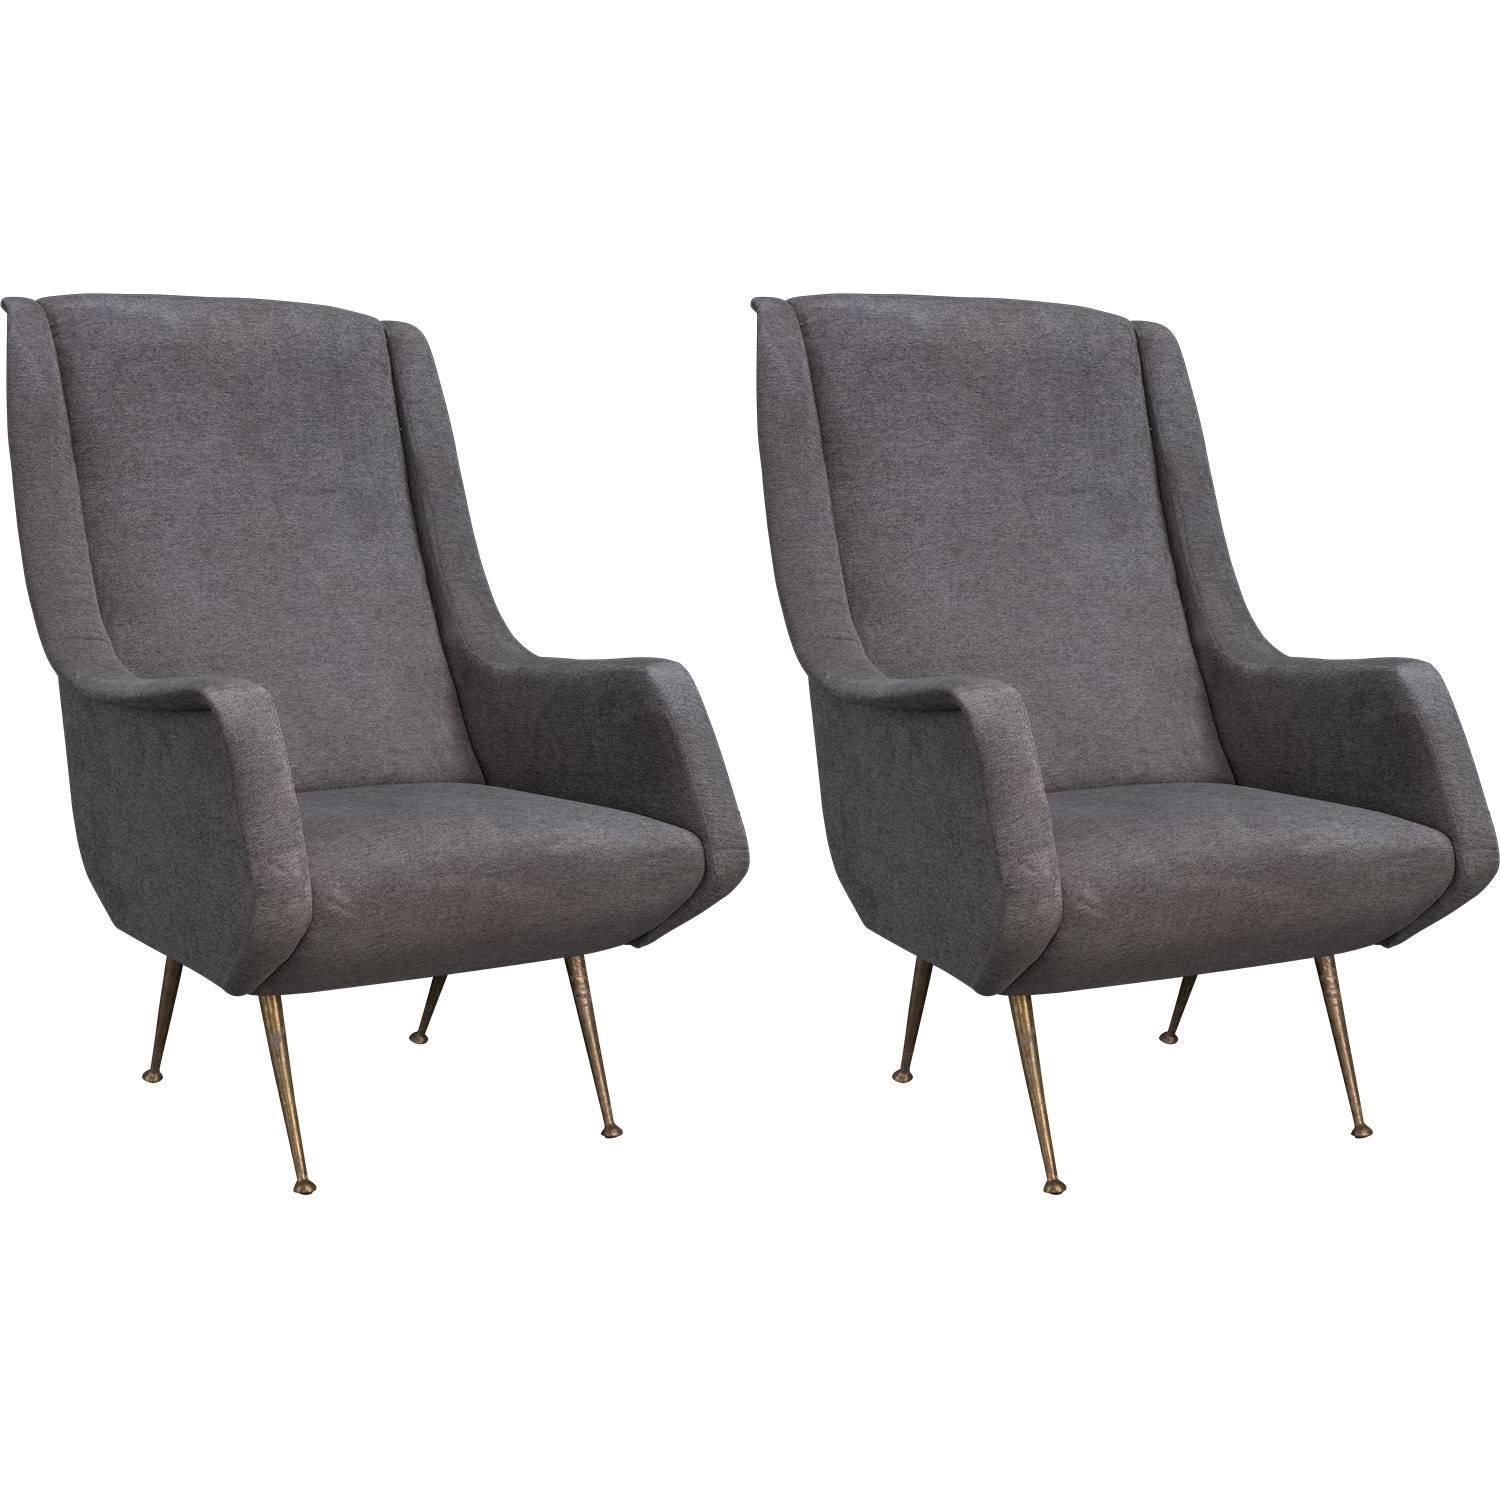 grey modern armchairs dining chairs with nailheads velvet and brass circa 1960 mcm design from a unique collection of antique at